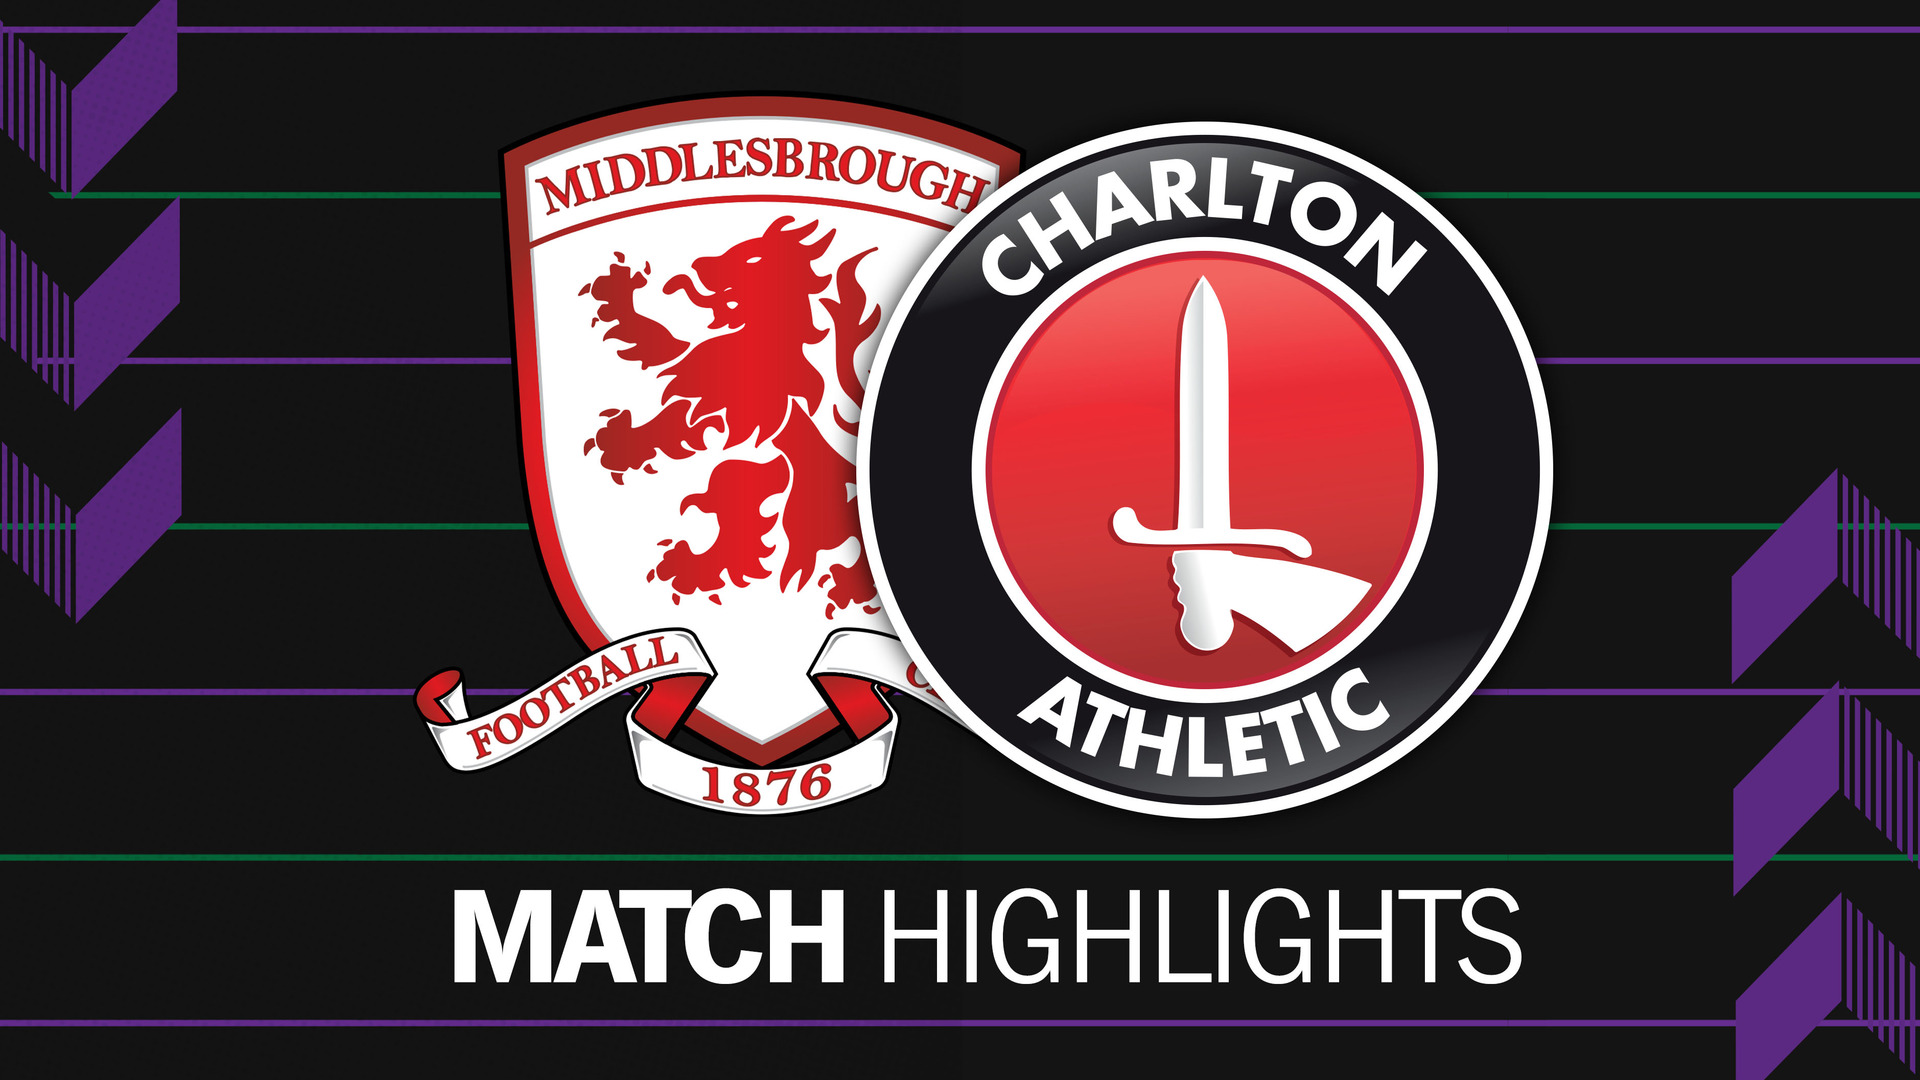 HIGHLIGHTS | Middlesbrough 1 Charlton 0 (December 2019)